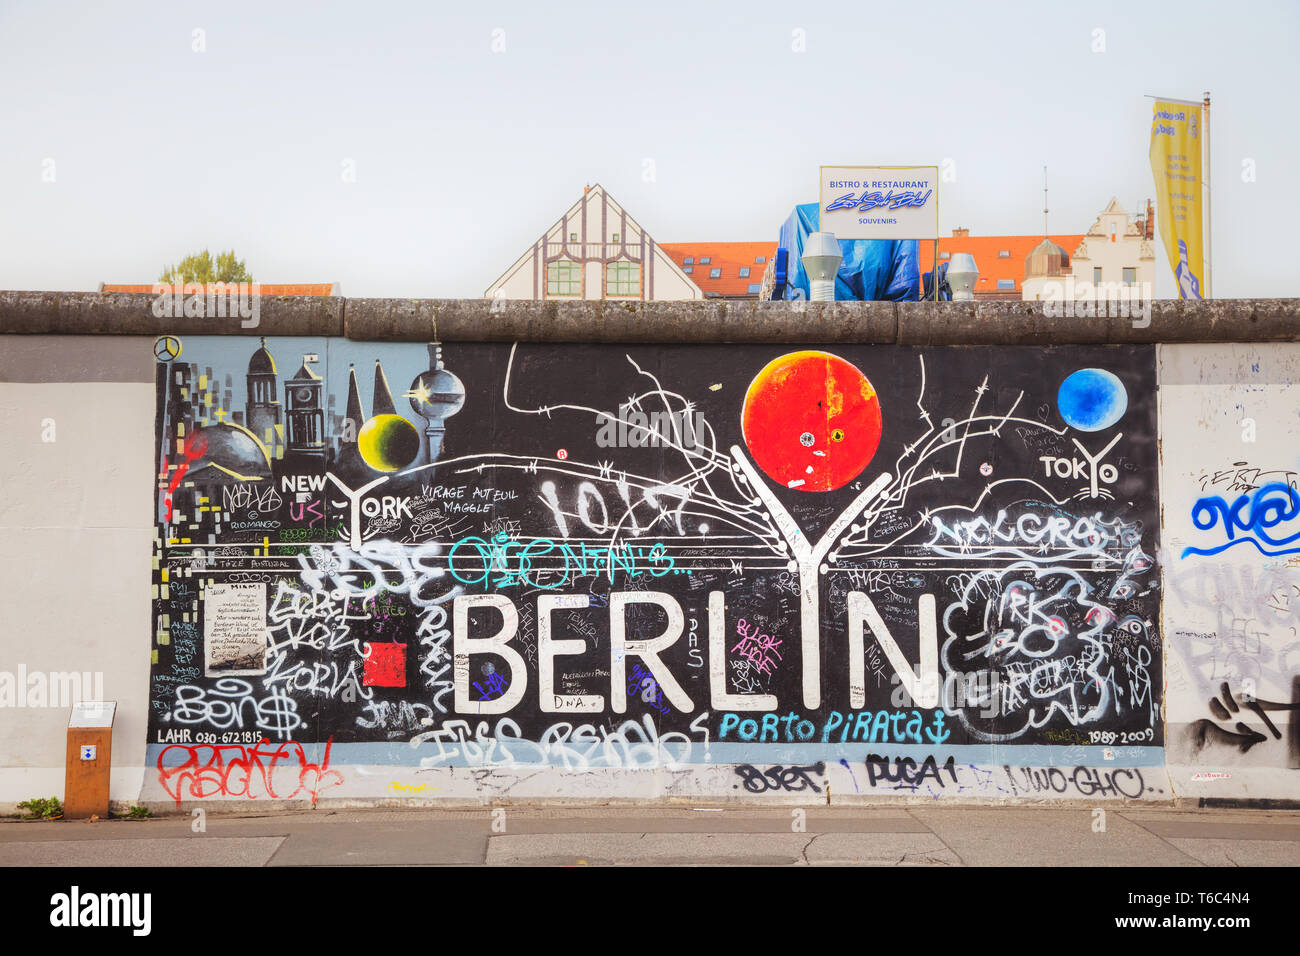 The Berlin wall (Berliner Mauer) with grafitti - Stock Image